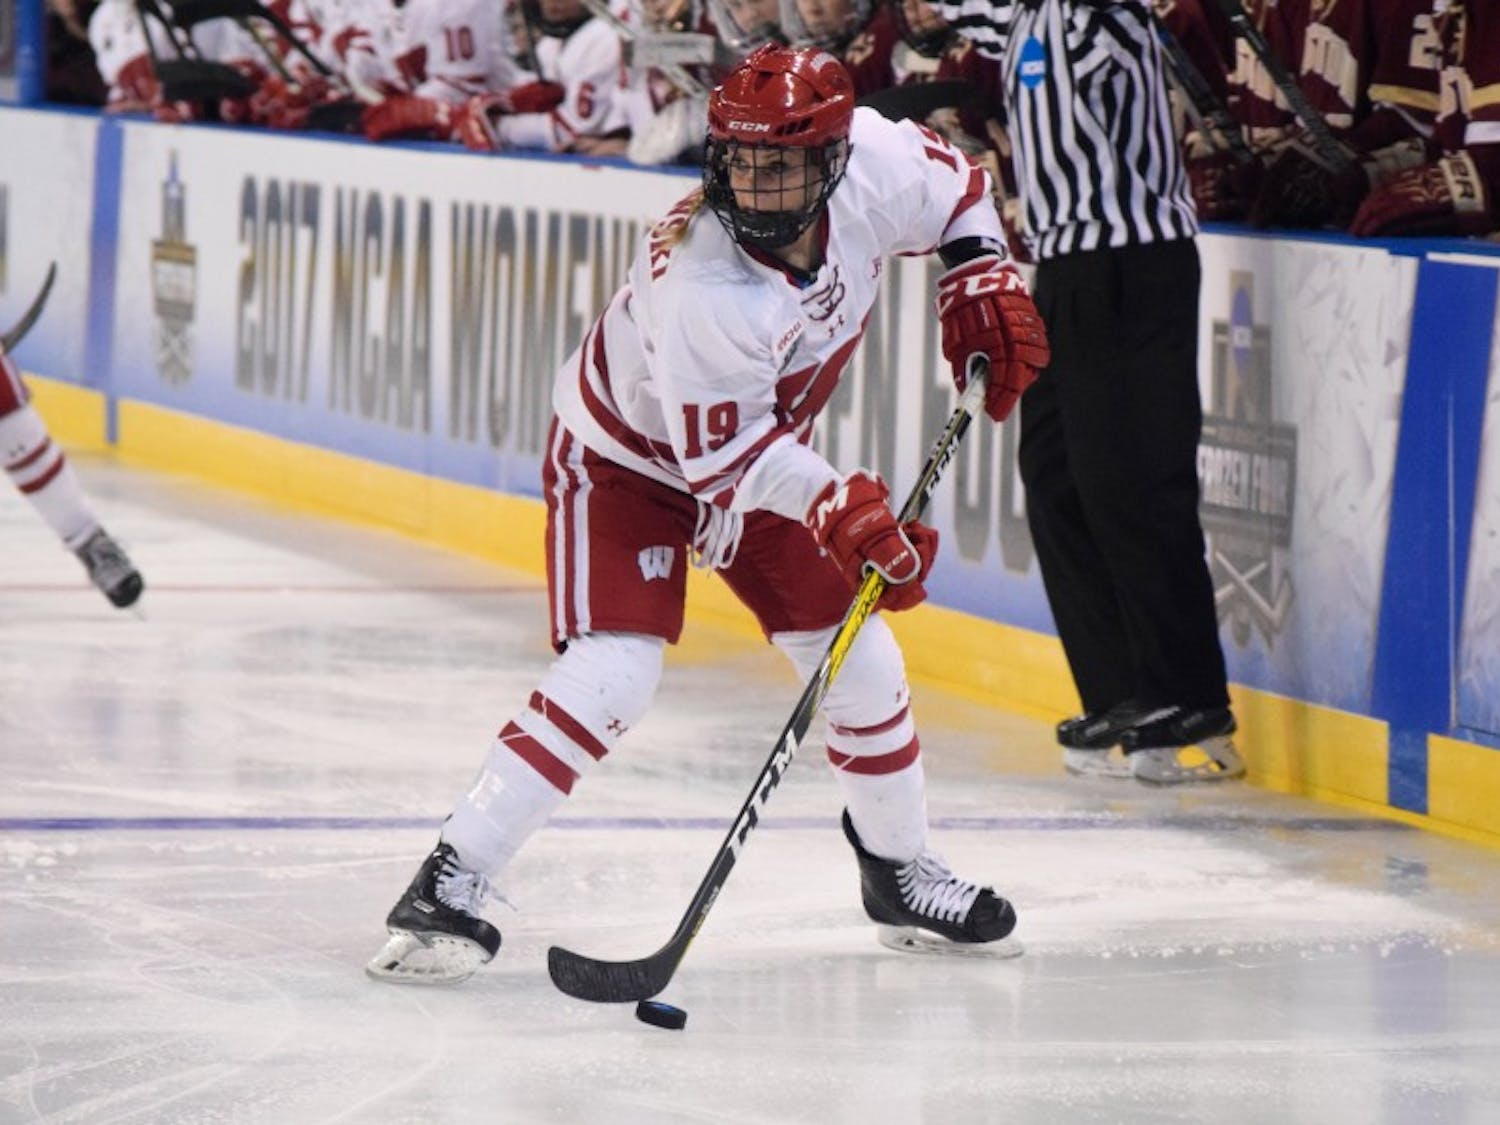 Annie Pankowski was named one of the three finalists for the Patty Kazmaier Award Thursday, the sixth Badger to receive such an honor.